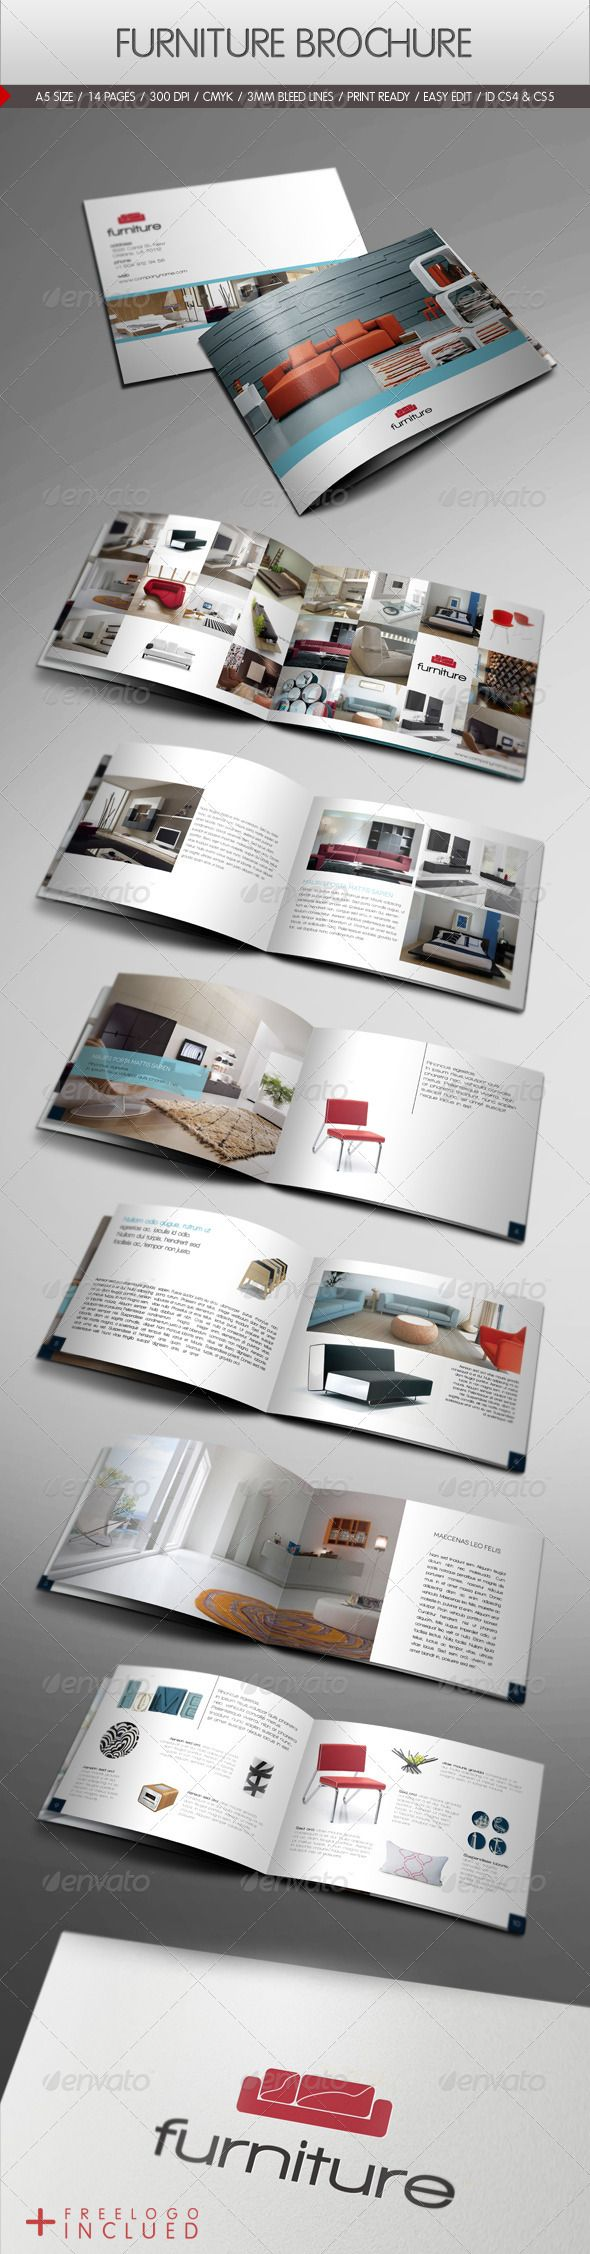 Furniture Brochure - GraphicRiver Item for Sale